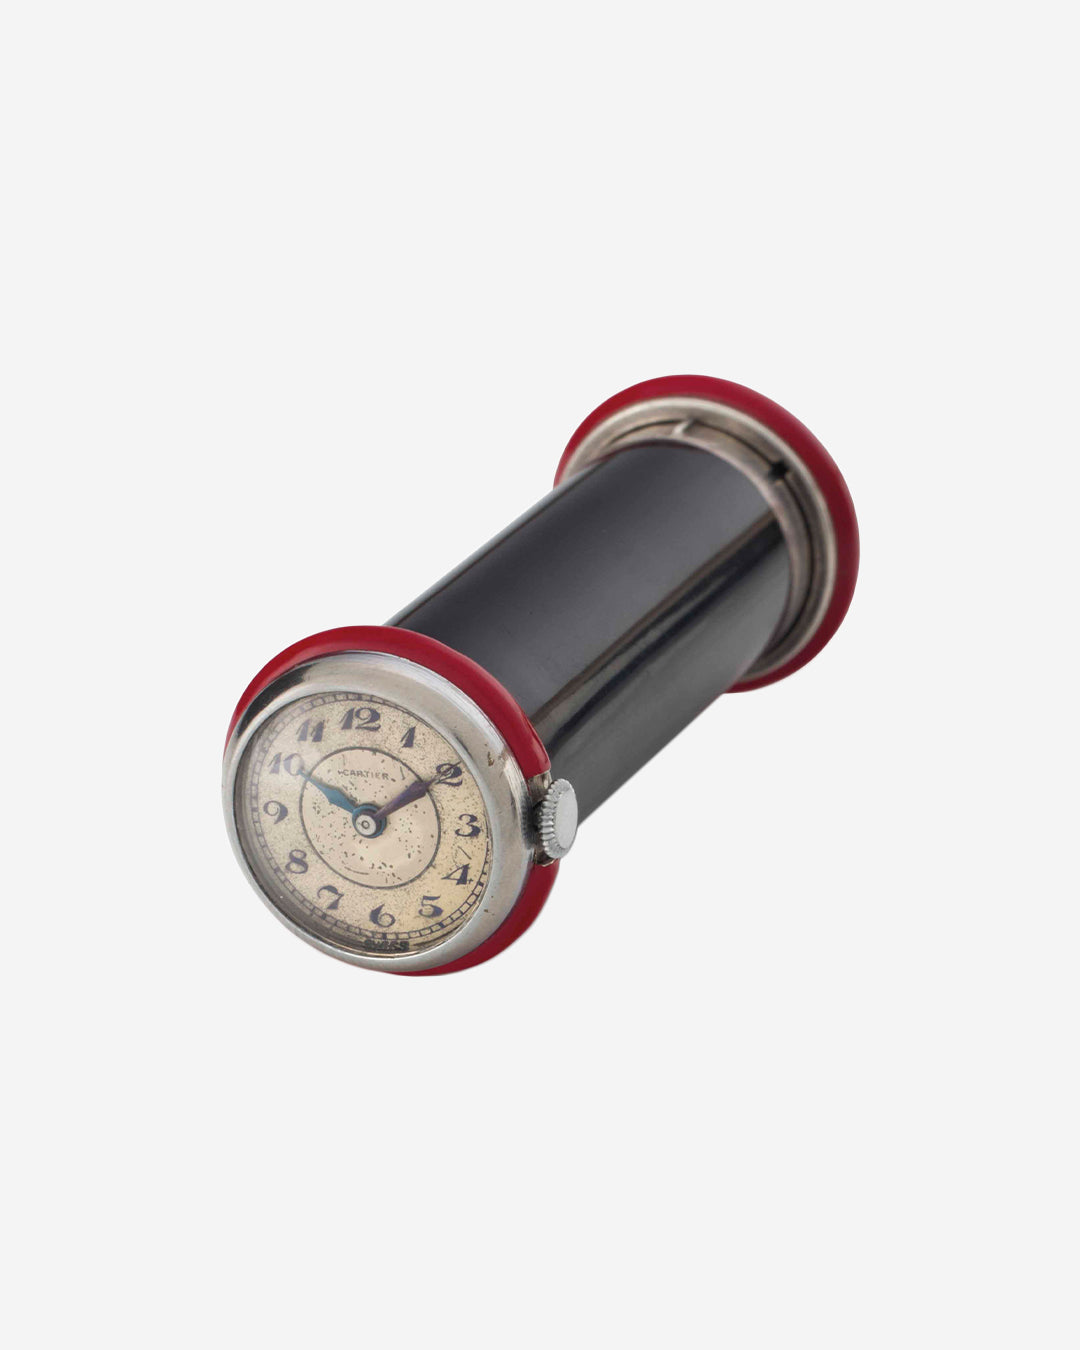 A Cartier Lipstick Holder with Round Watch at the End in Our Favourite Horological Objects for A Collected Man London